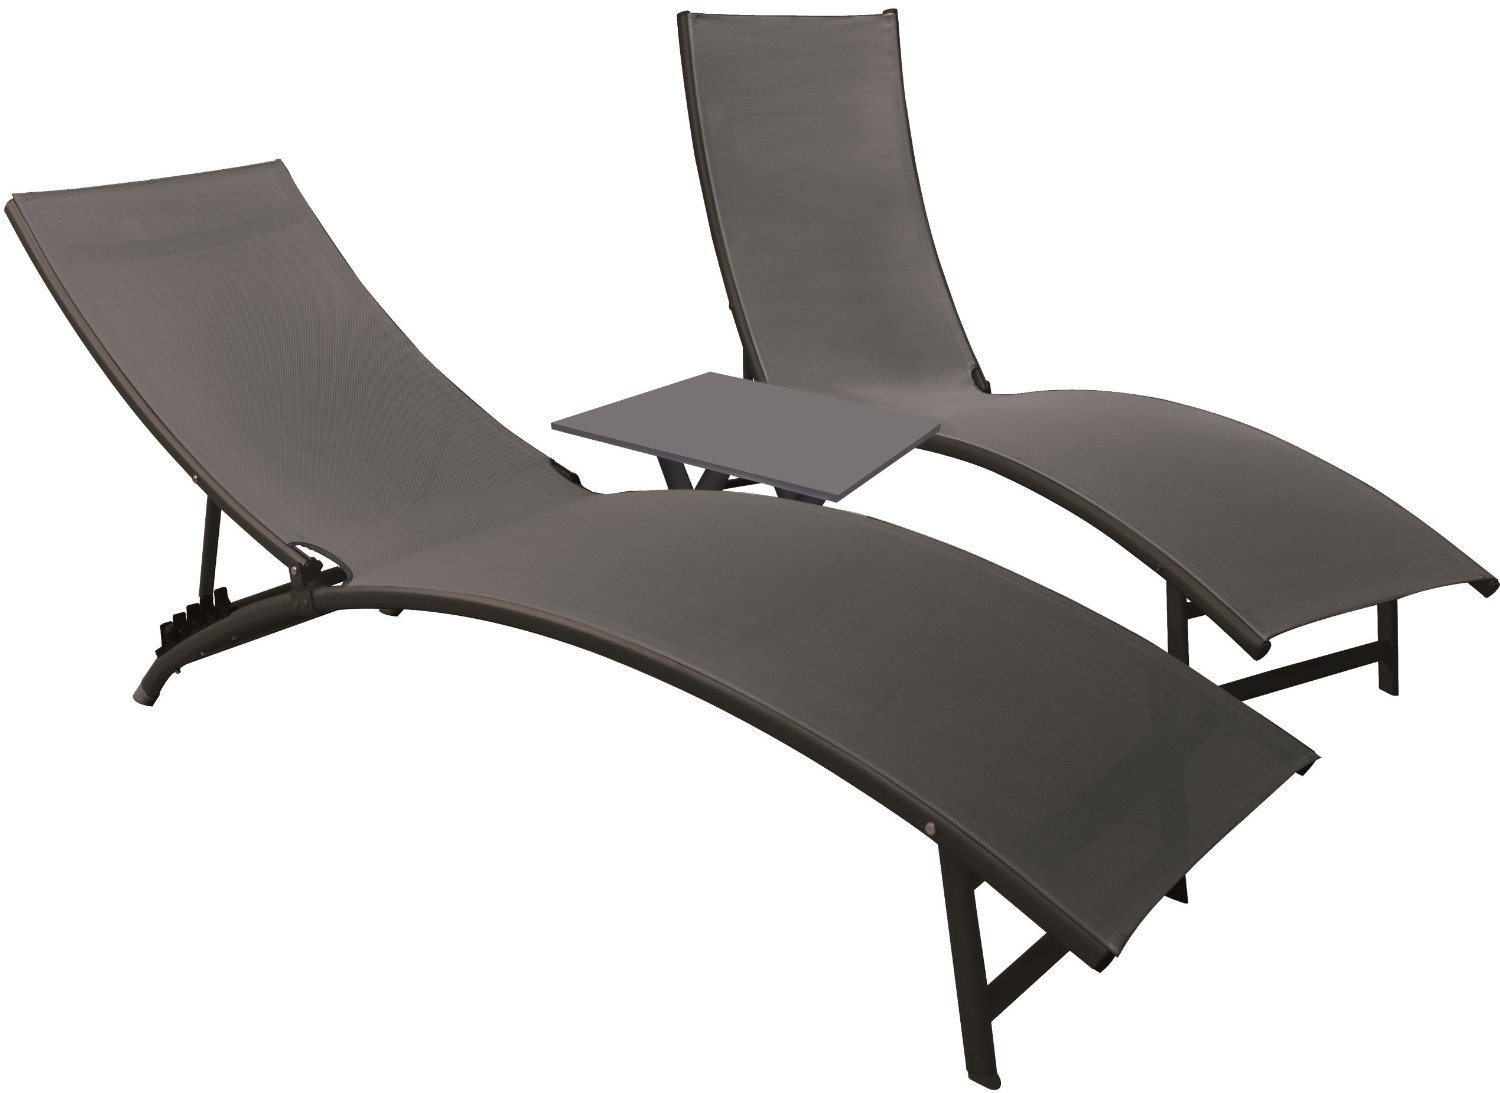 Eclipse Collection Midtown Sun Lounger 3 Pc Set (2 loungers, 1 table) - Black Chrome New